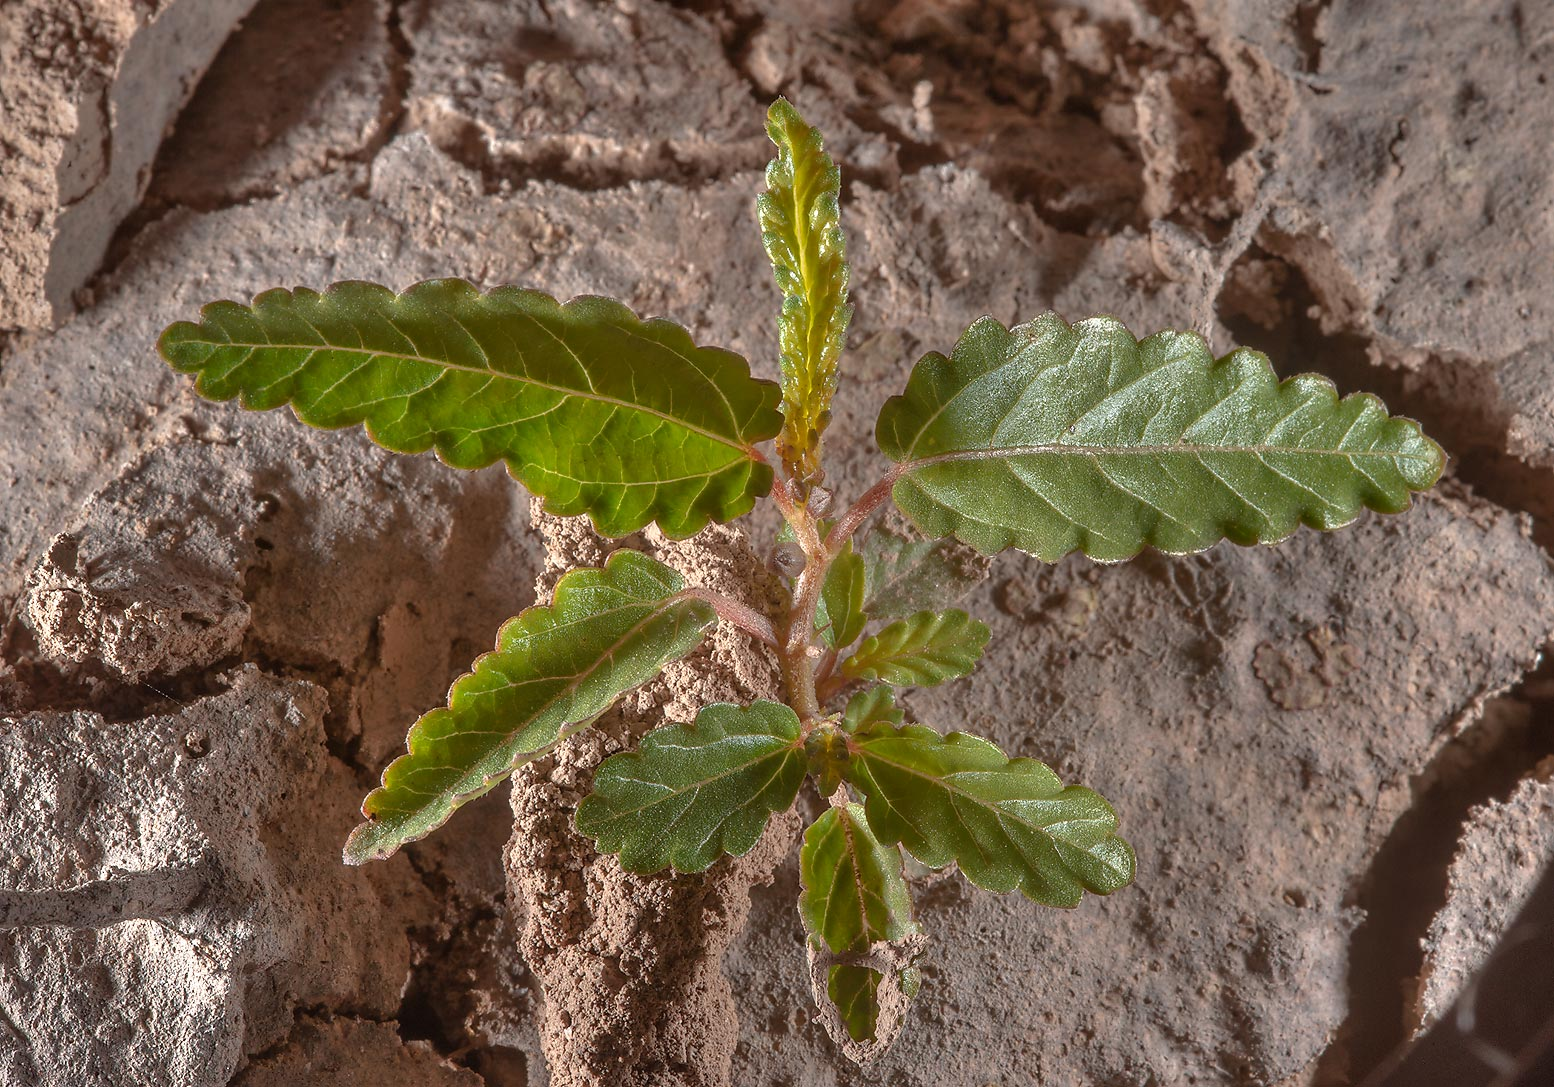 Seedling of wild jute (Corchorus trilocularis) in...Nuaman, Nuaimiya). Northern Qatar